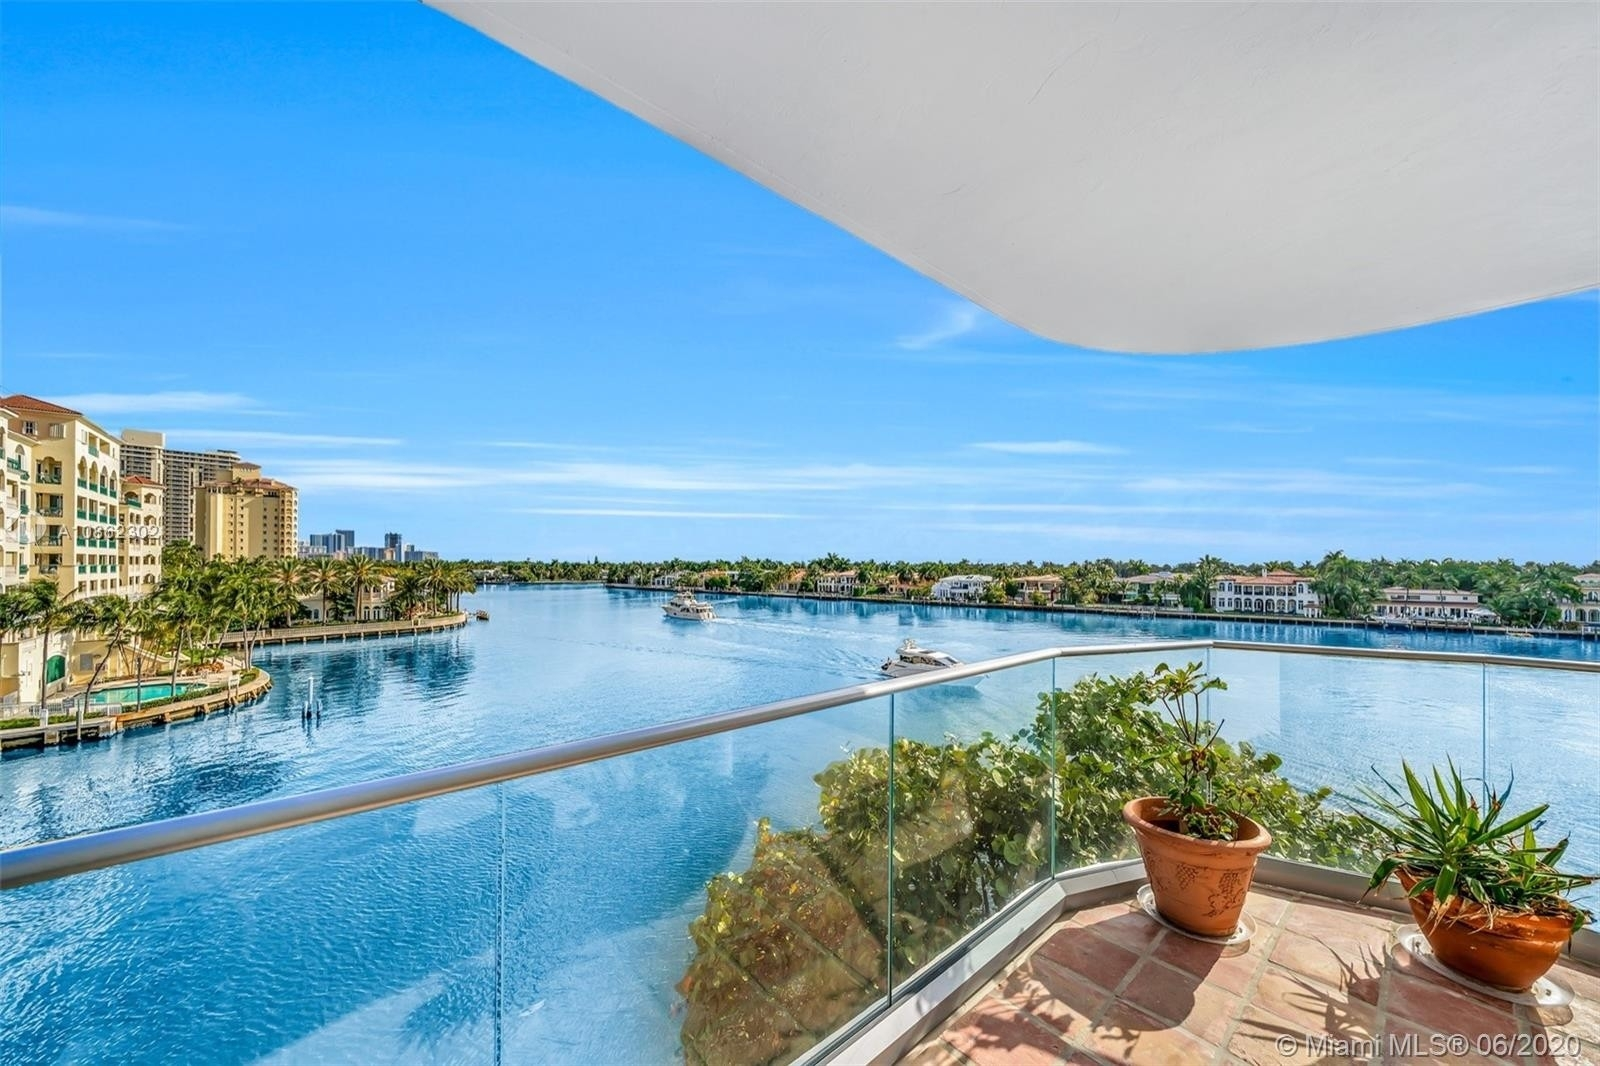 Property à 19707 Turnberry Way , 5J + 5K Biscayne Yacht and Country Club, Aventura, FL 33180